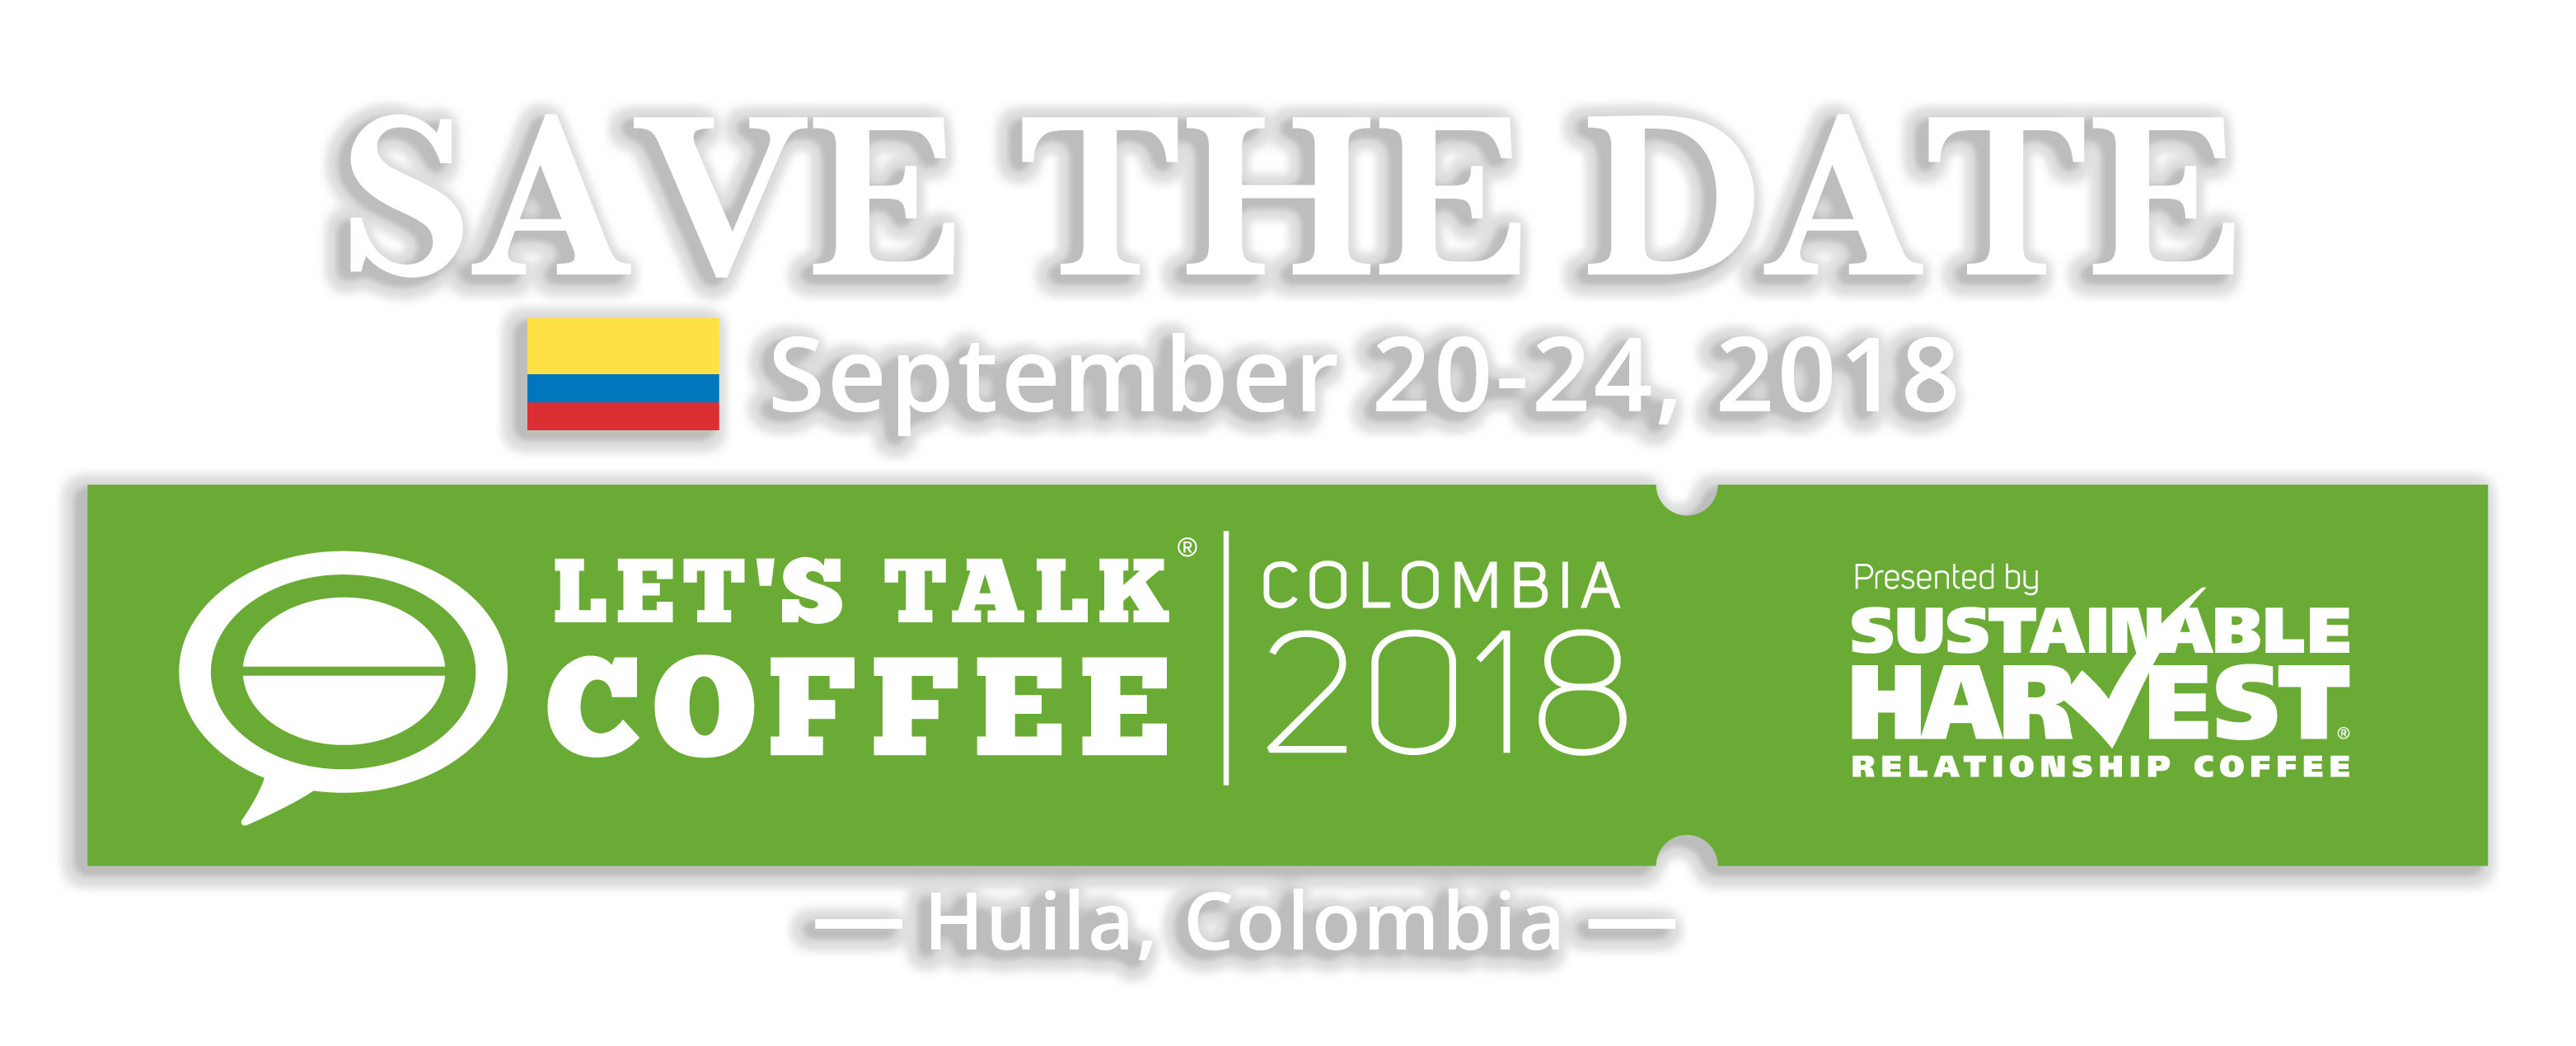 Let's Talk Coffee 2018 Colombia